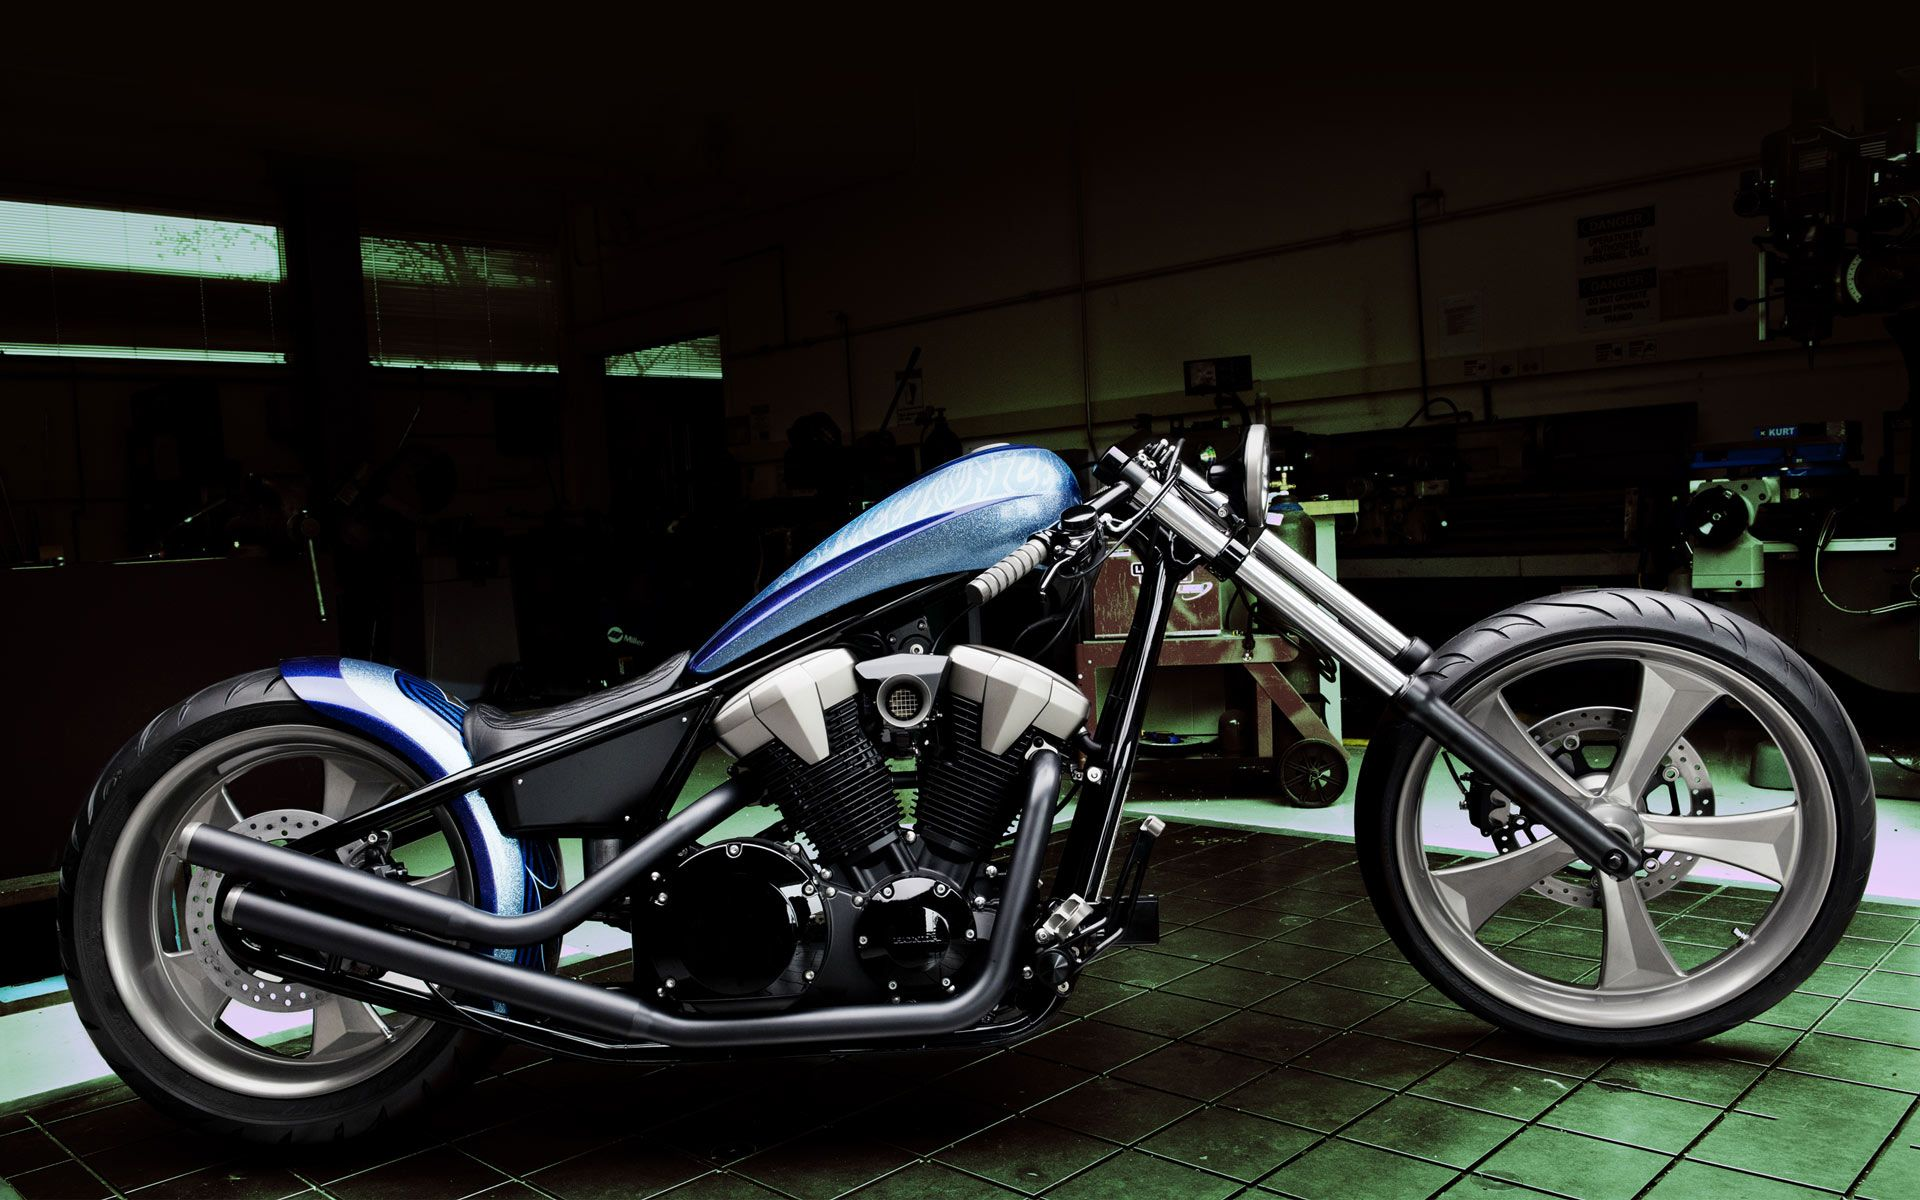 Heavy Bikes And Cars Wallpapers Free Download Davidson Wallpapers Photos And Desktop Backgrounds Up To